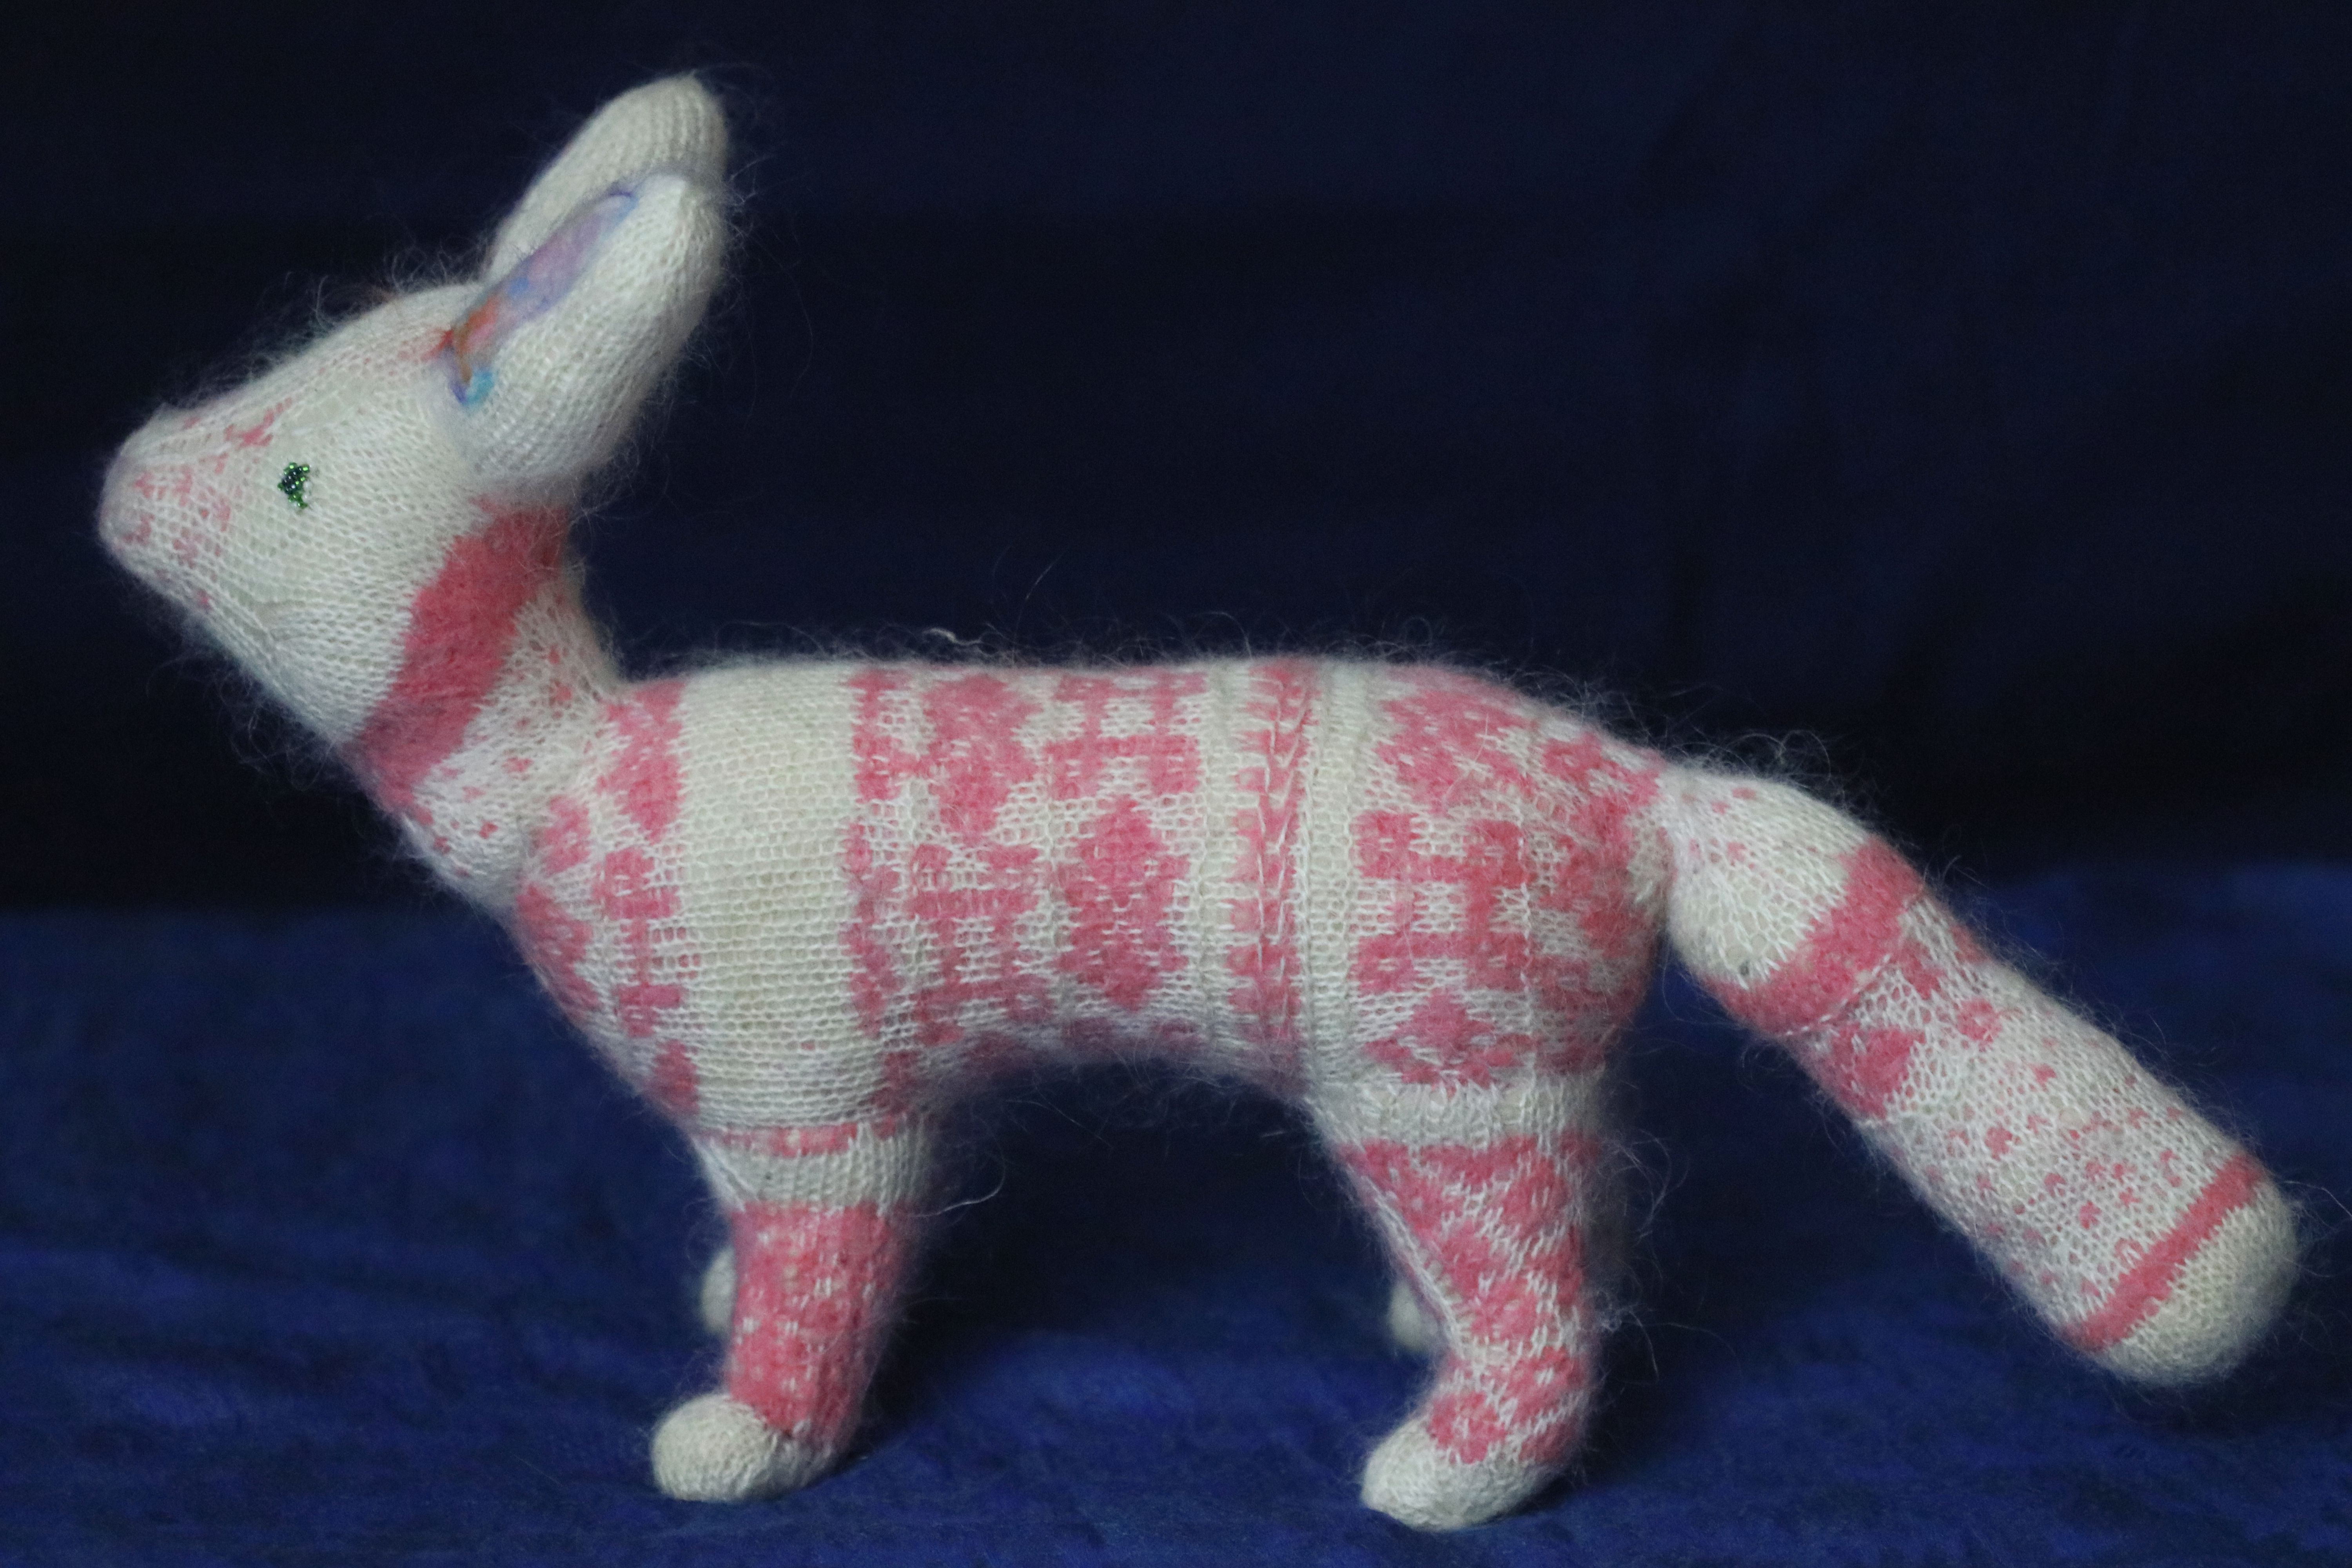 fox toy gift knitted animal plush kids decoration stuffed white pink sculpture collectible needle felted fiber orgonite stranded